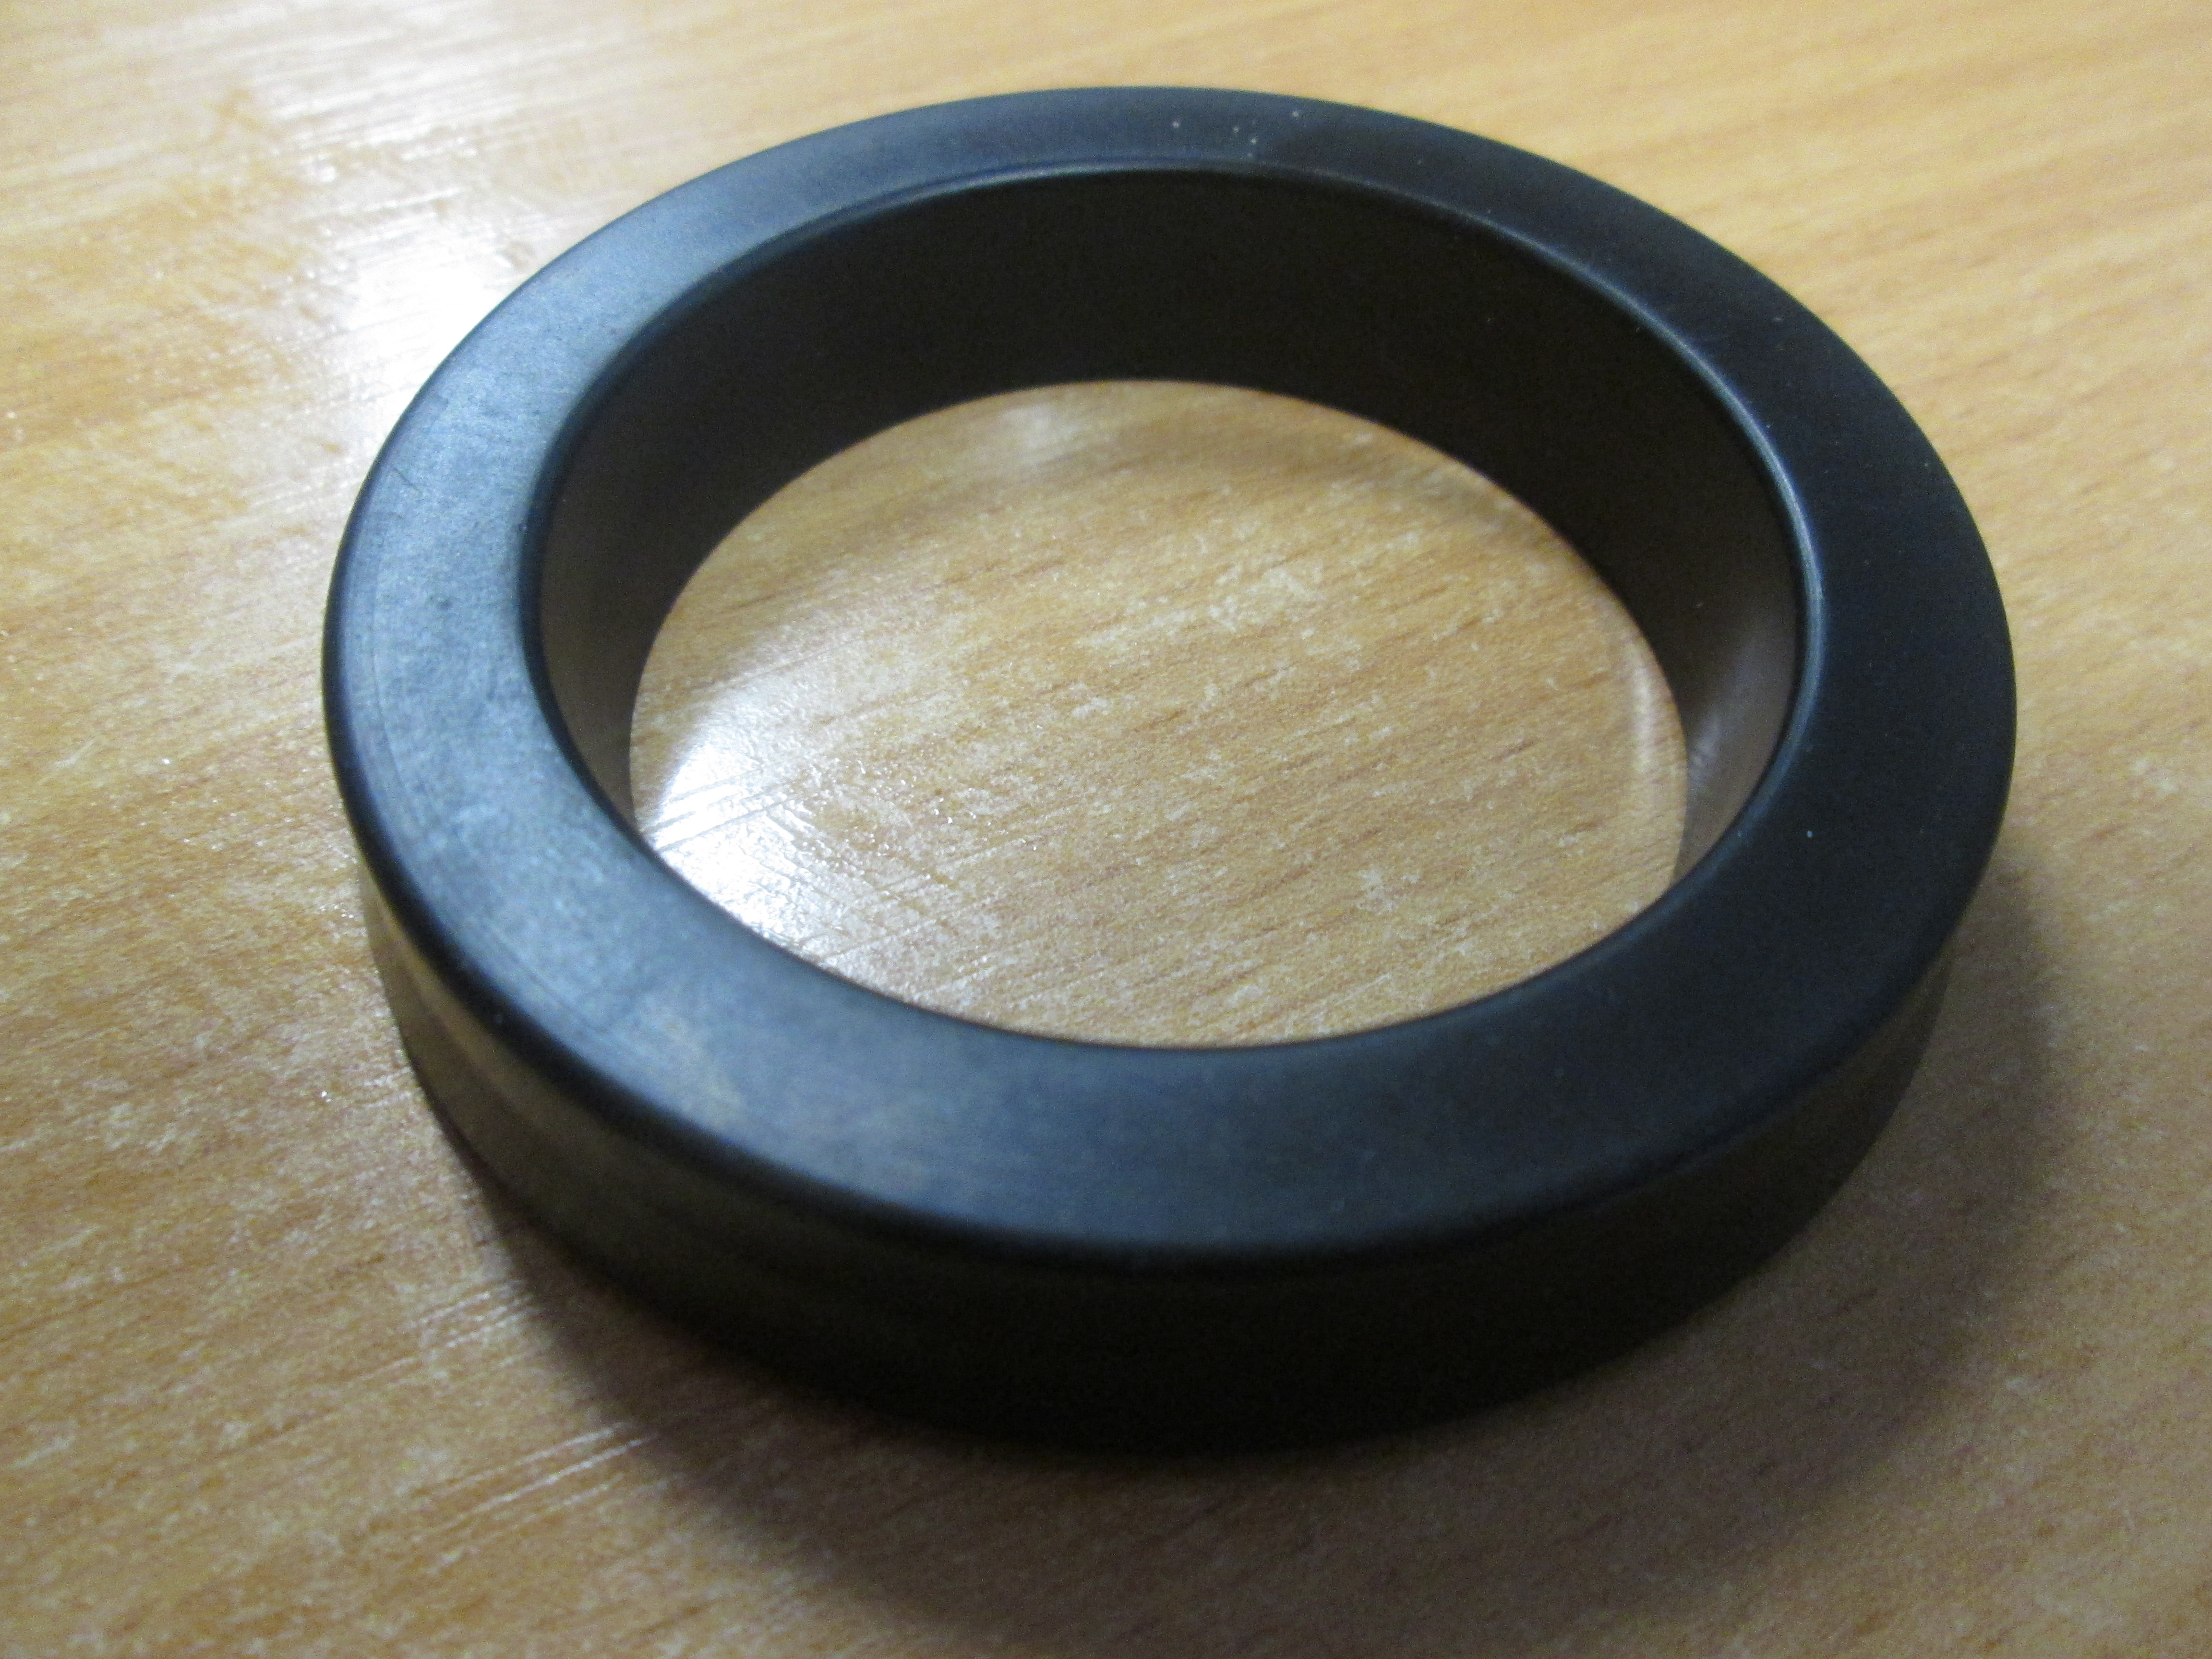 External Distributor Seal, Imperial 1.1/4inch x 1.7/8inch x 3/8